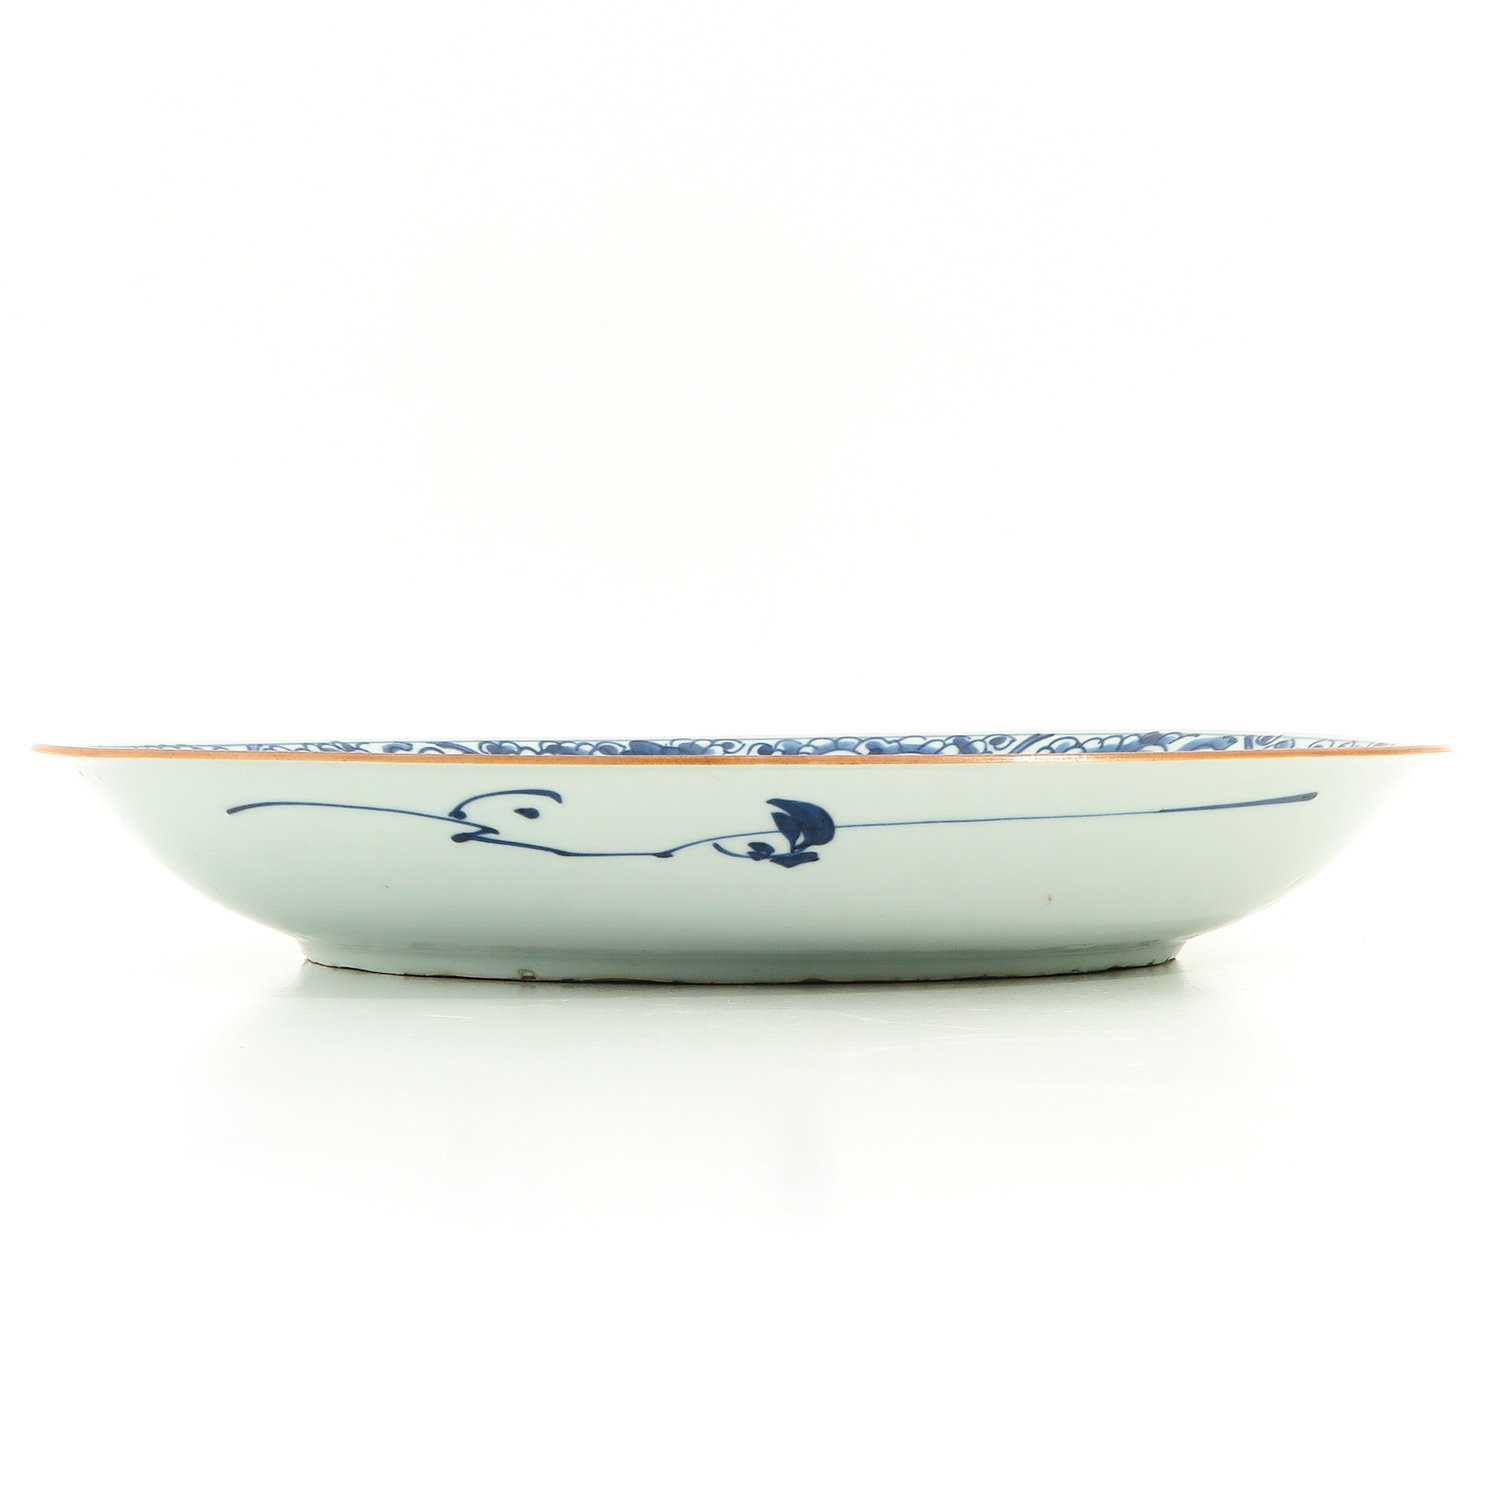 A Blue and White Charger - Image 4 of 7